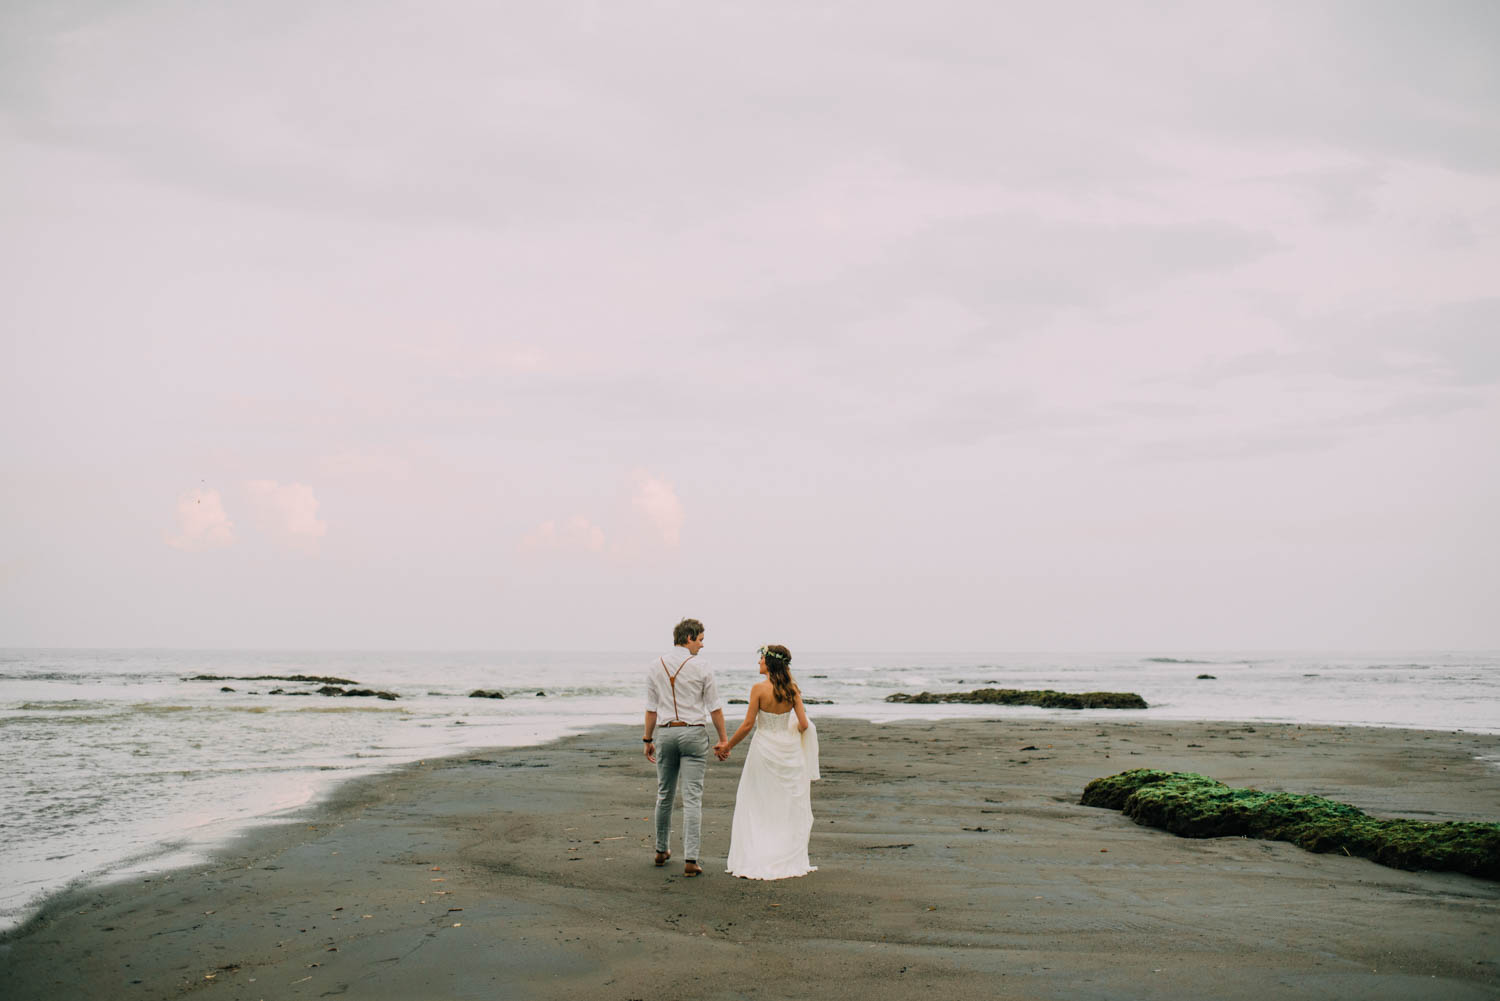 baliwedding-destination-diktatphotography-weddinginbali-baliweddingphotographer-villapusphapuri-83